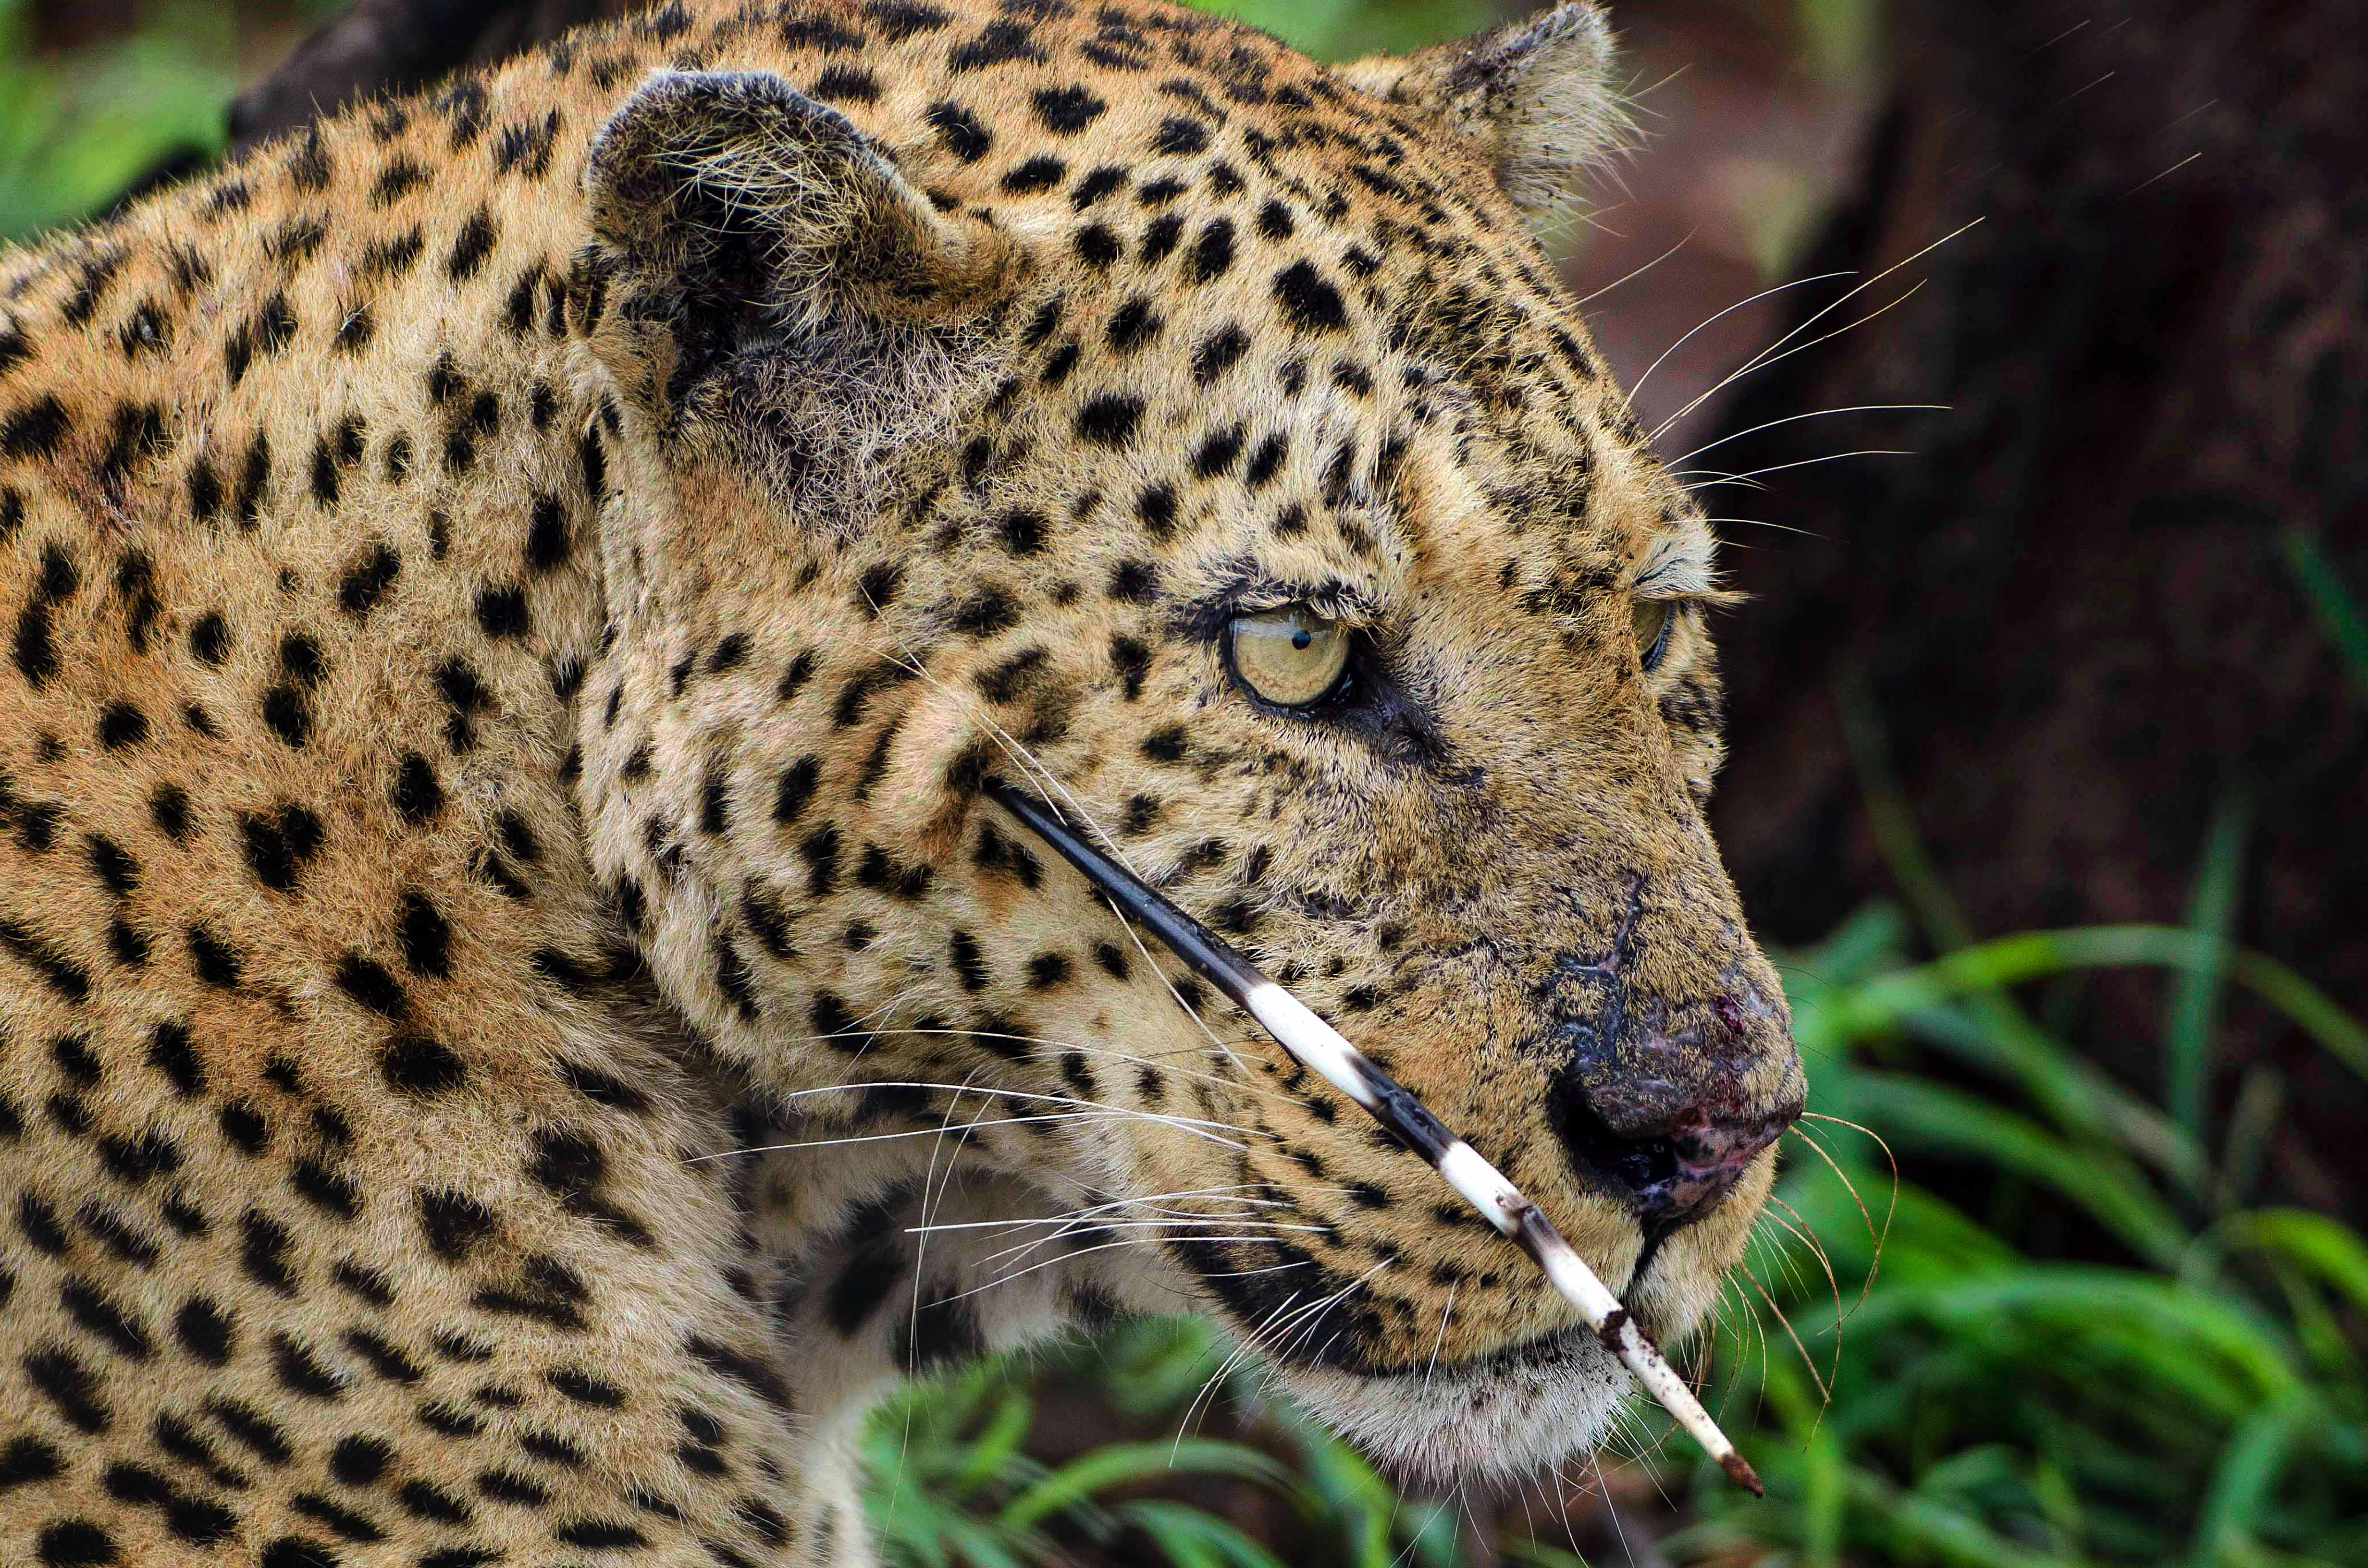 Leopard with a quill under its eye after attack on porcupine went horribly wrong.